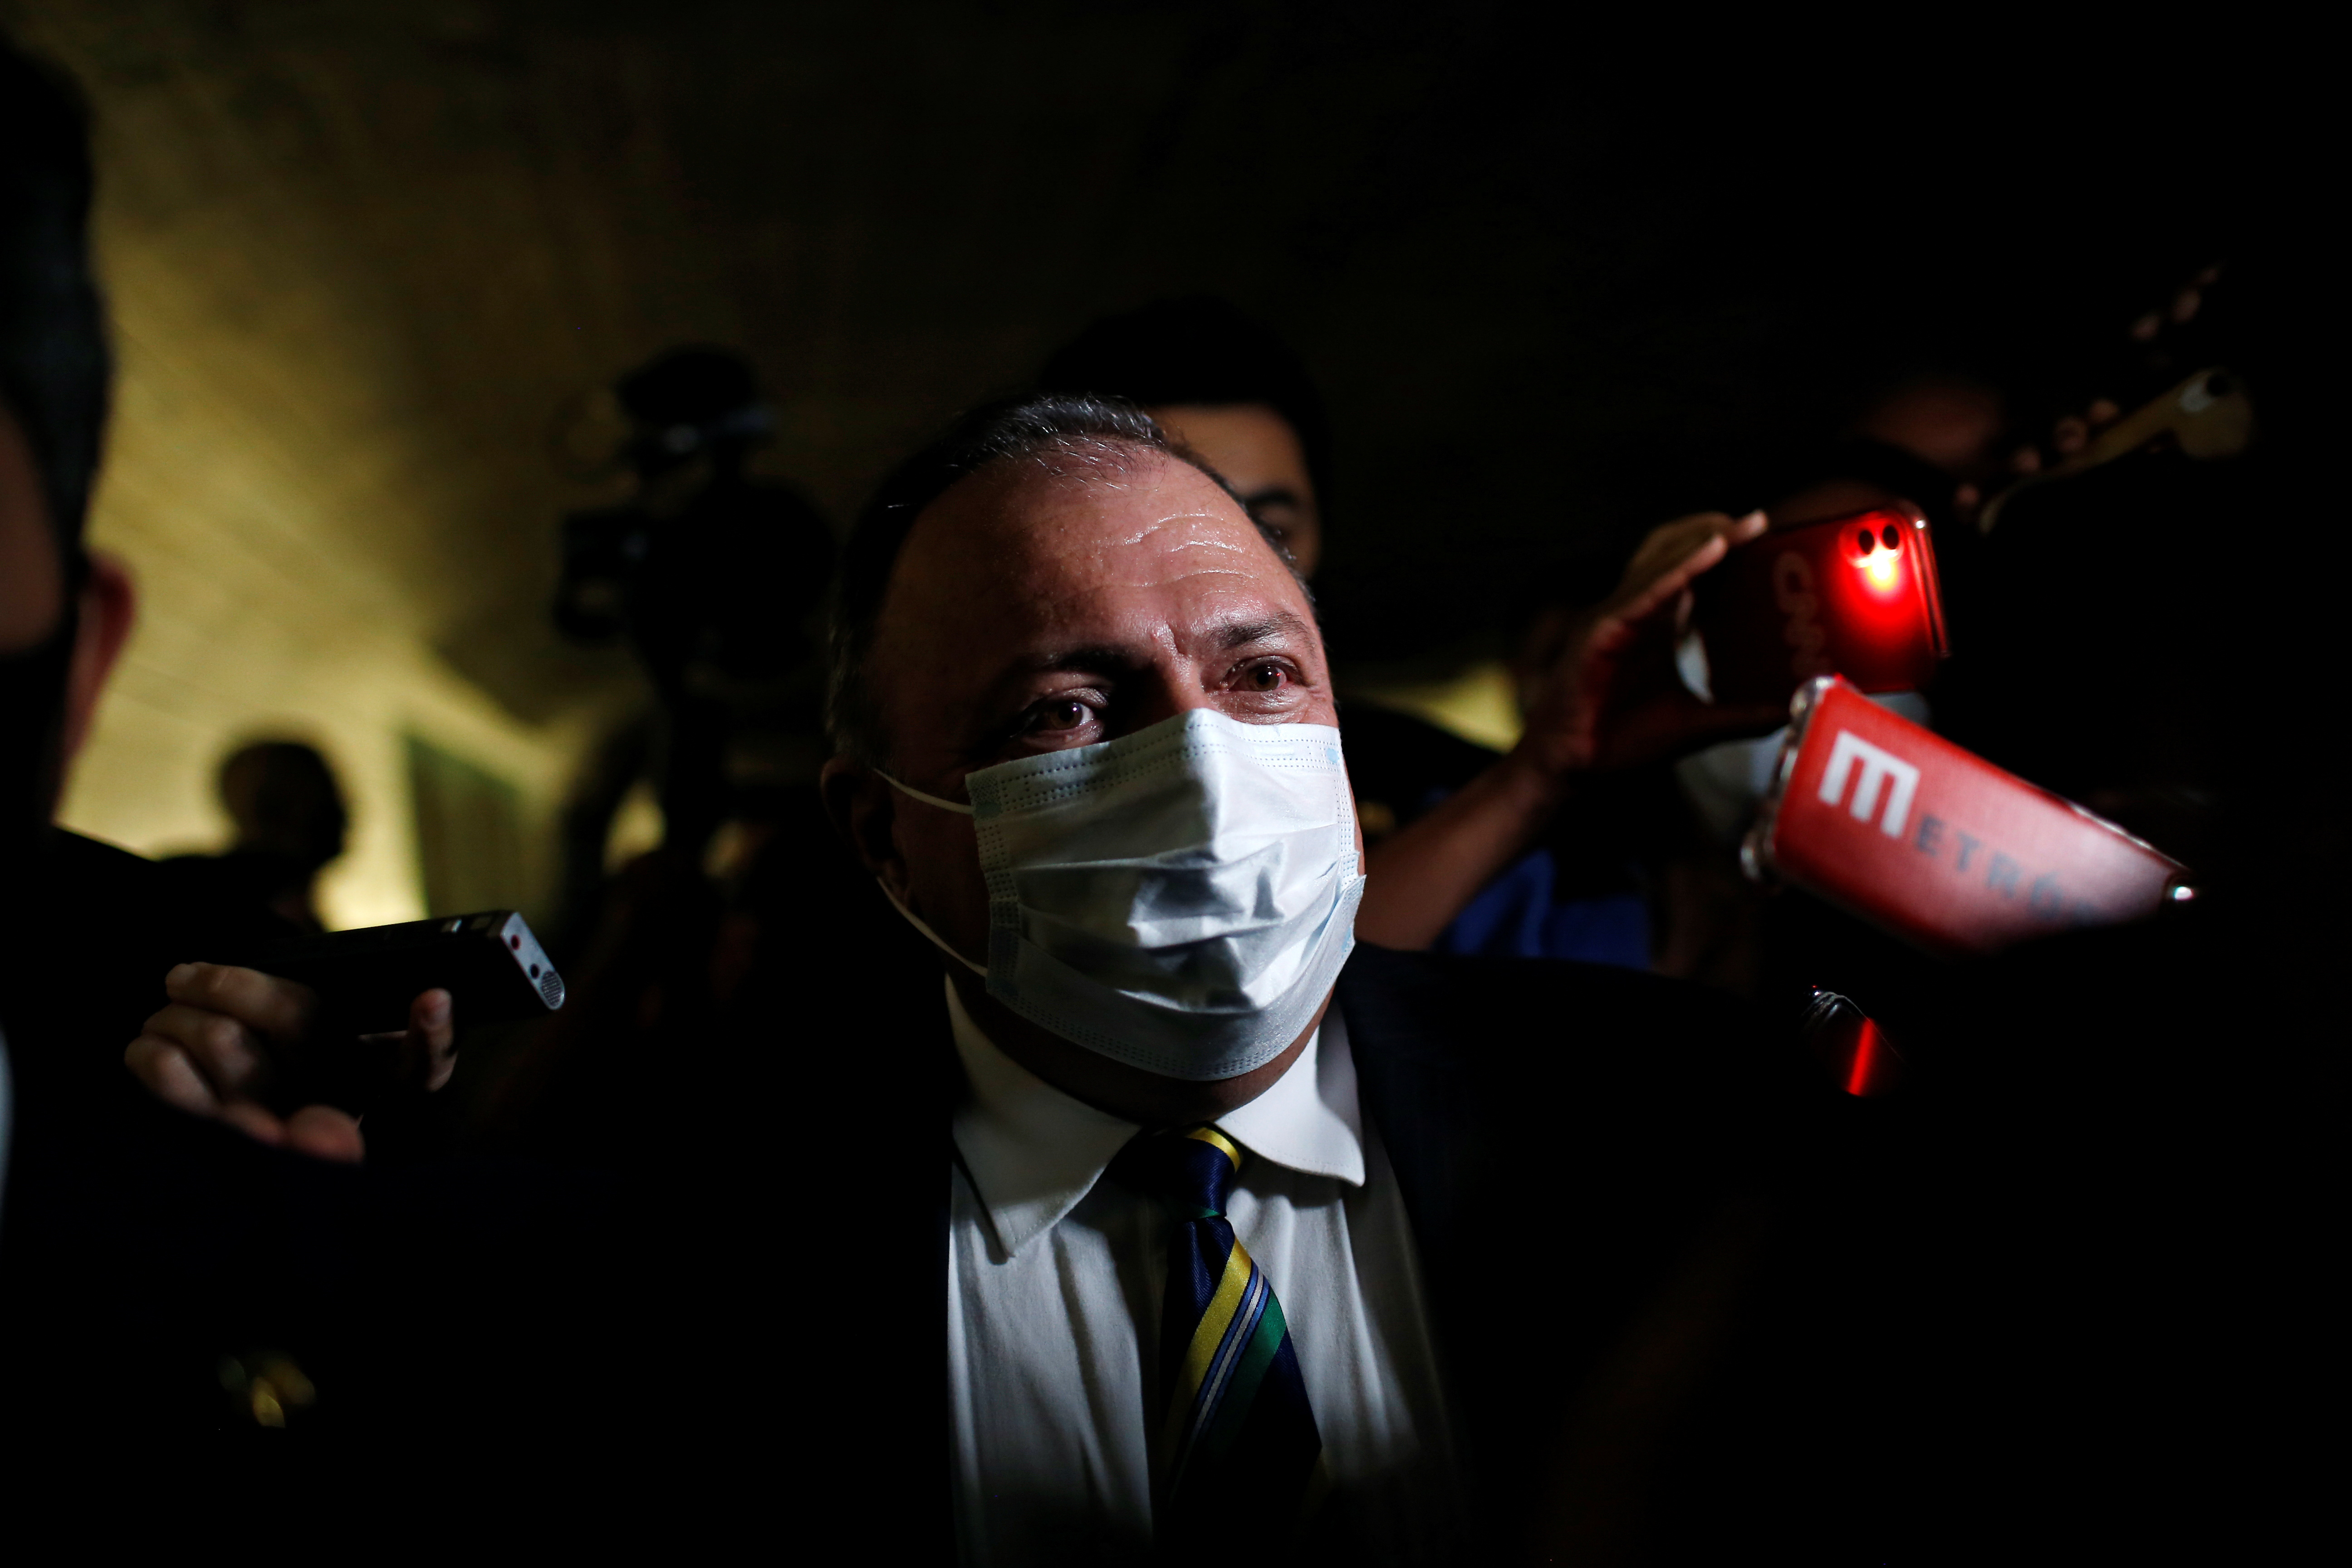 Former Brazil's Health Minister Eduardo Pazuello is seen after a meeting of the Parliamentary Inquiry Committee (CPI) to investigate government actions and management during the coronavirus disease (COVID-19) pandemic, at the Federal Senate in Brasilia, Brazil May 19, 2021. REUTERS/Adriano Machado